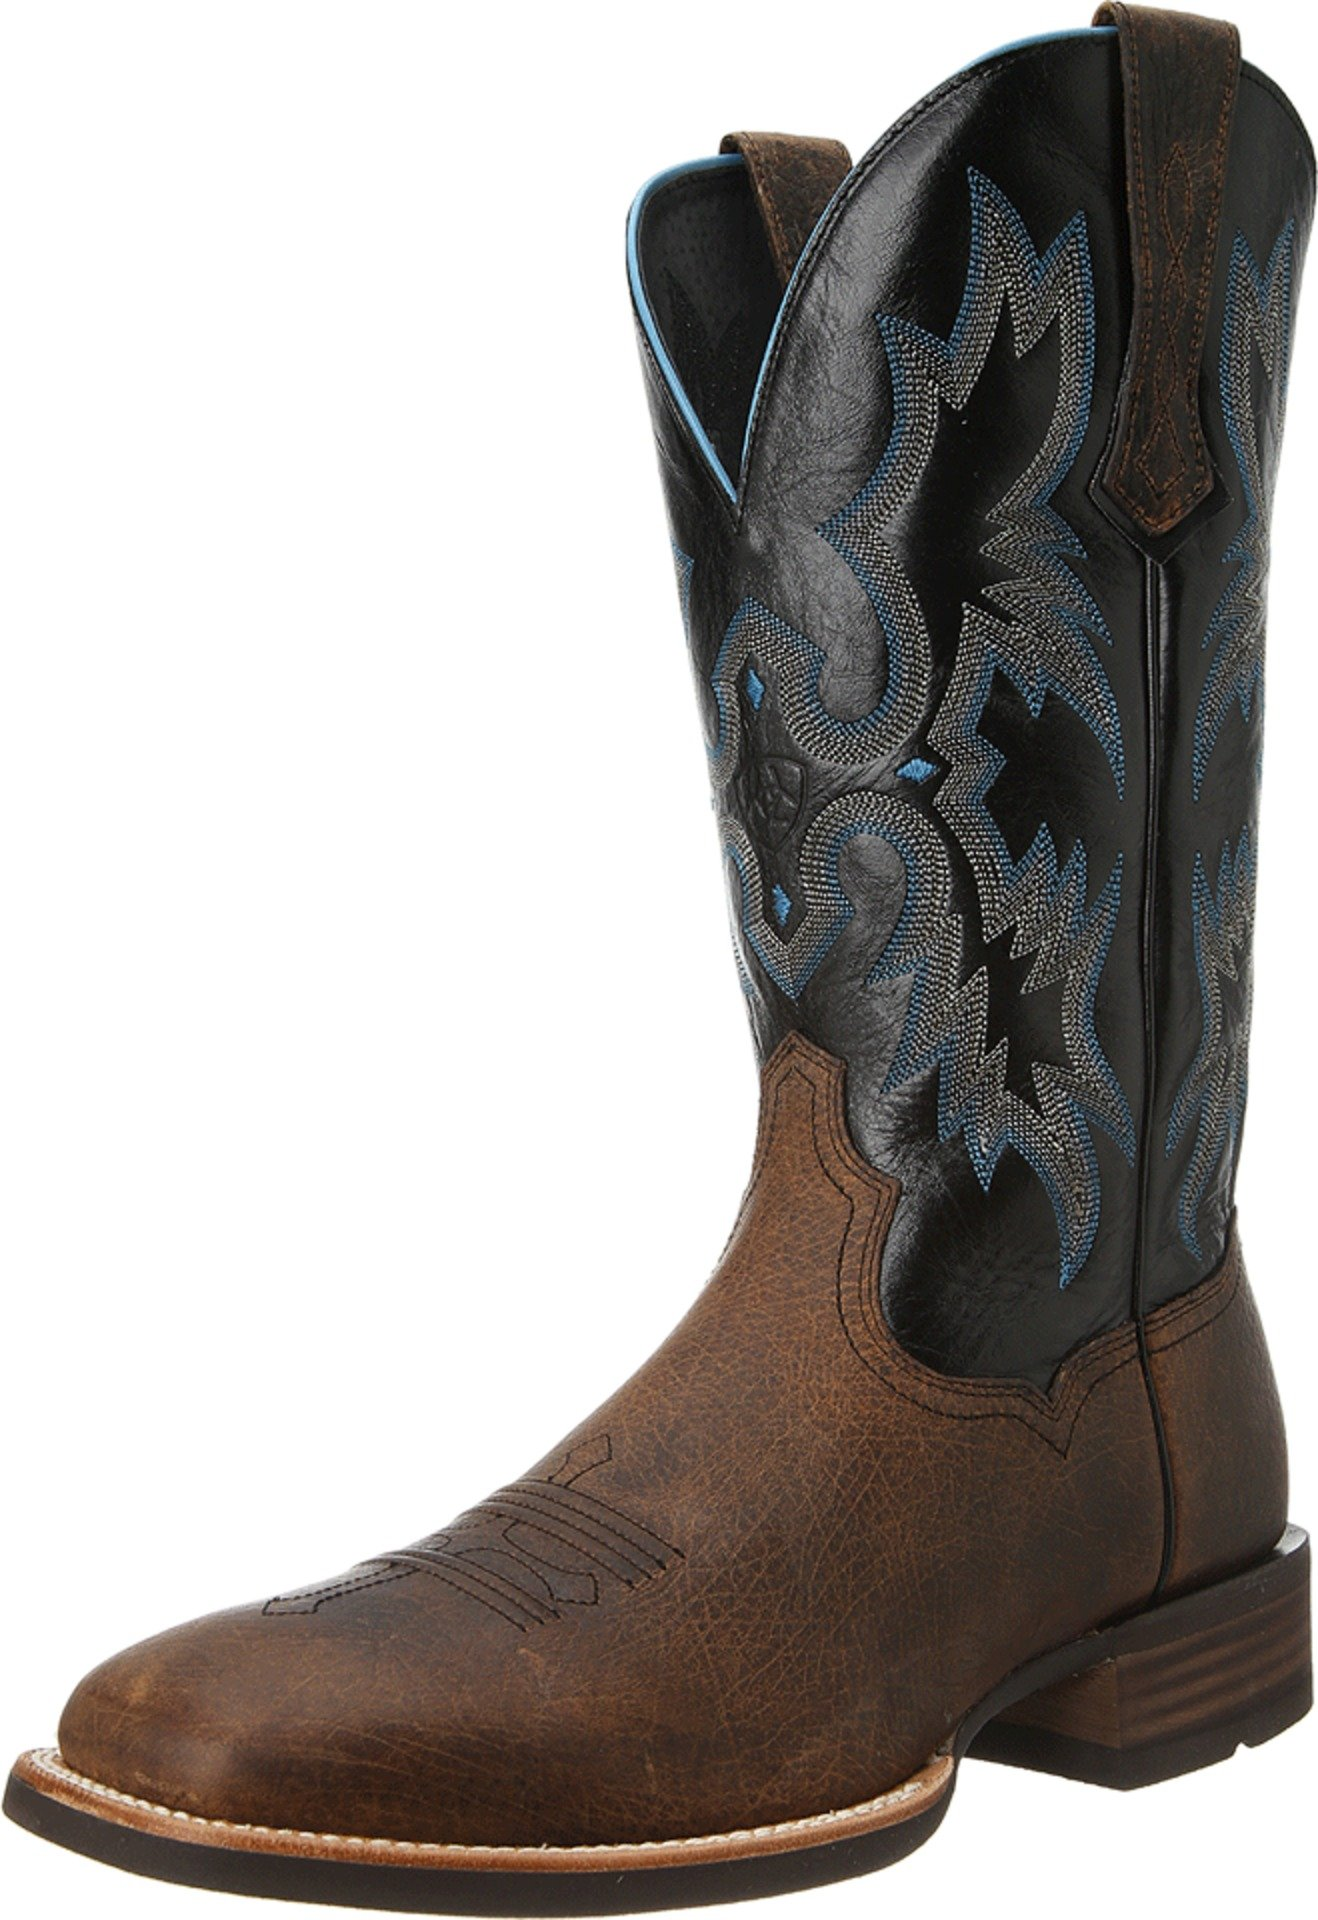 Ariat Men's Tombstone Western Cowboy Boot, Earth/Black, 9.5 2E US